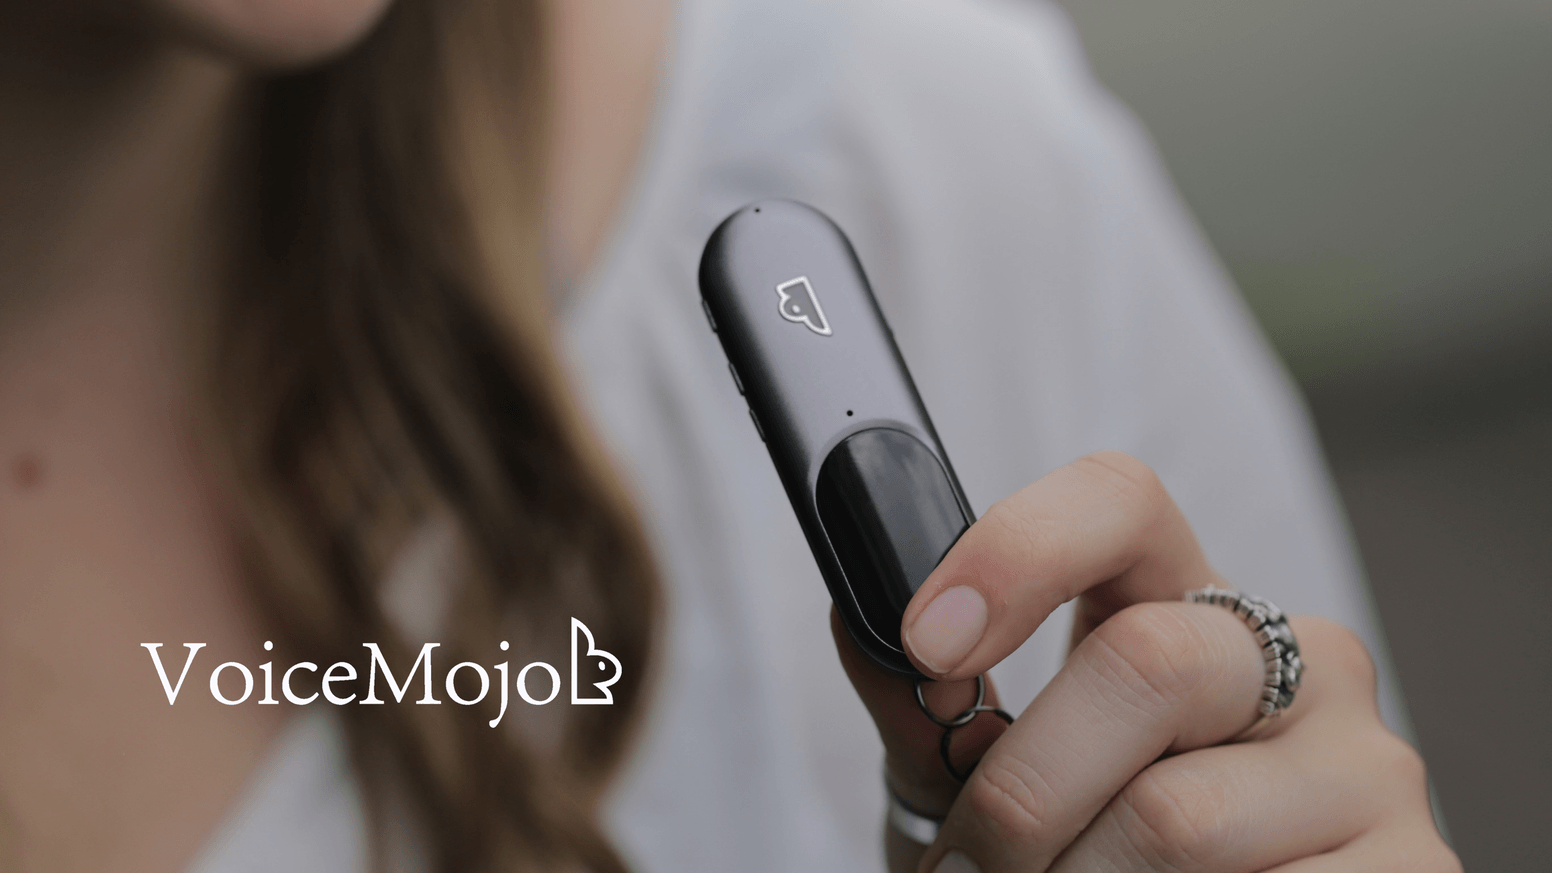 VoiceMojo makes it easy to translate to different languages